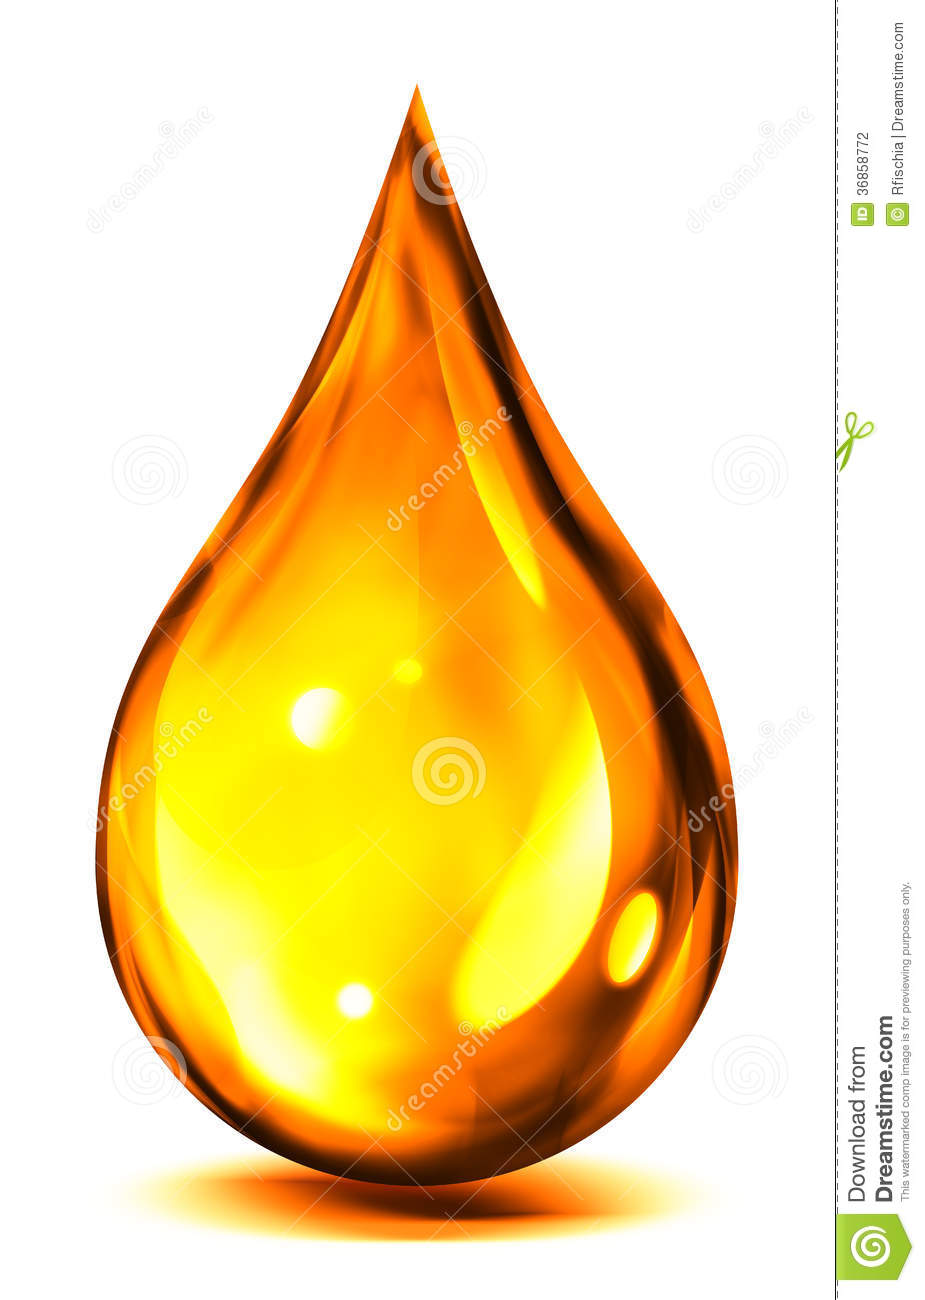 Diethylether Proton Full also File Newman projection ethane likewise Heterocyclic  pounds Bascis Of Nomenclature moreover File Anisole acsv in addition Stock Photography Drop Oil Fuel Droplet White Image36858772. on benzene